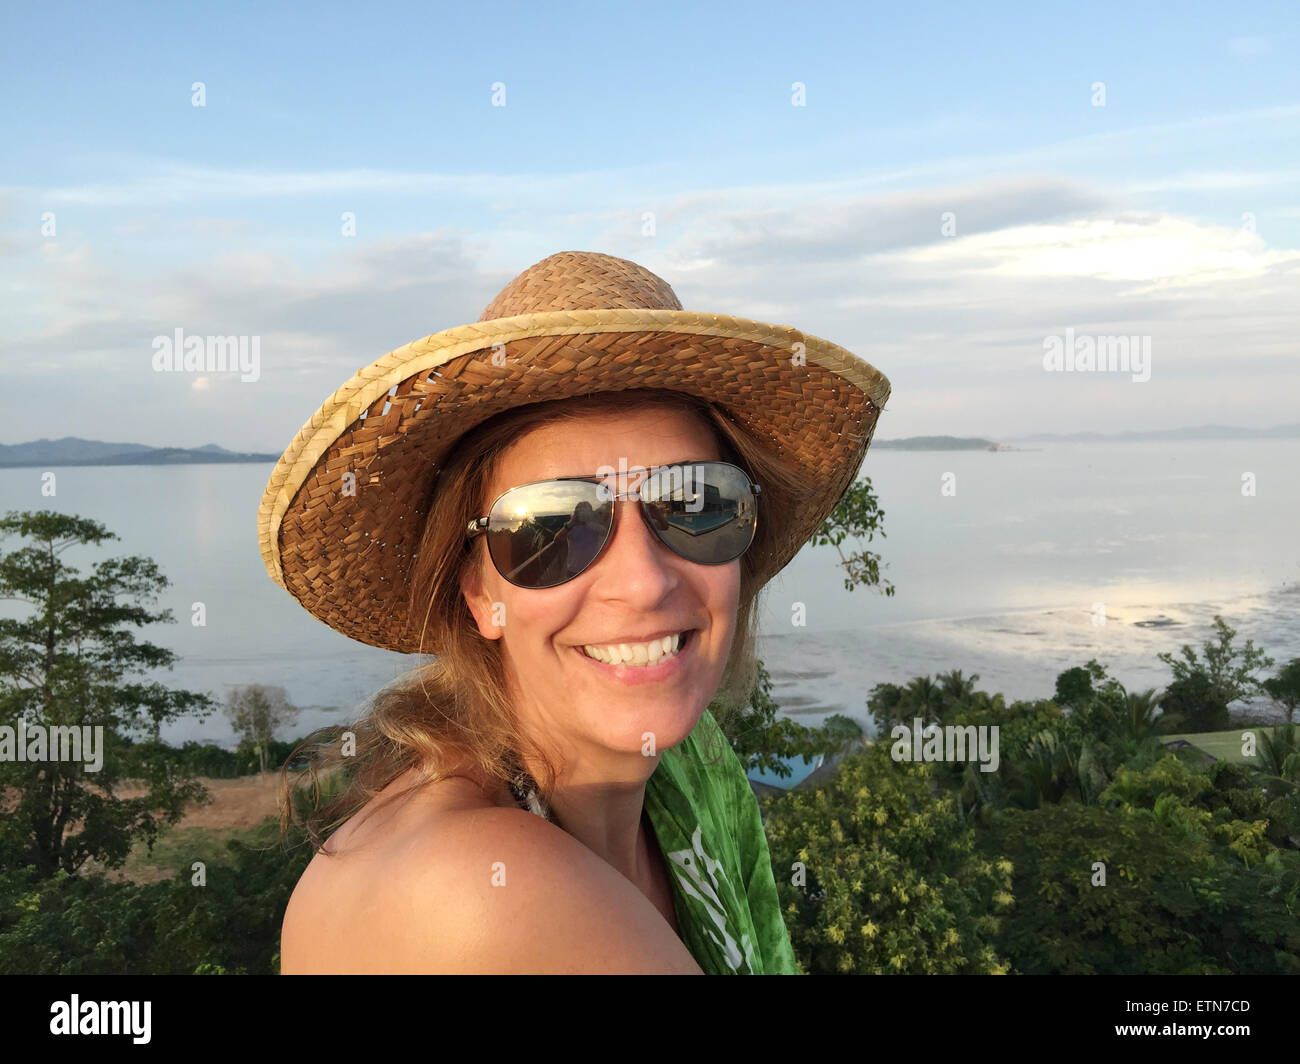 Portrait of a woman on holiday - Stock Image